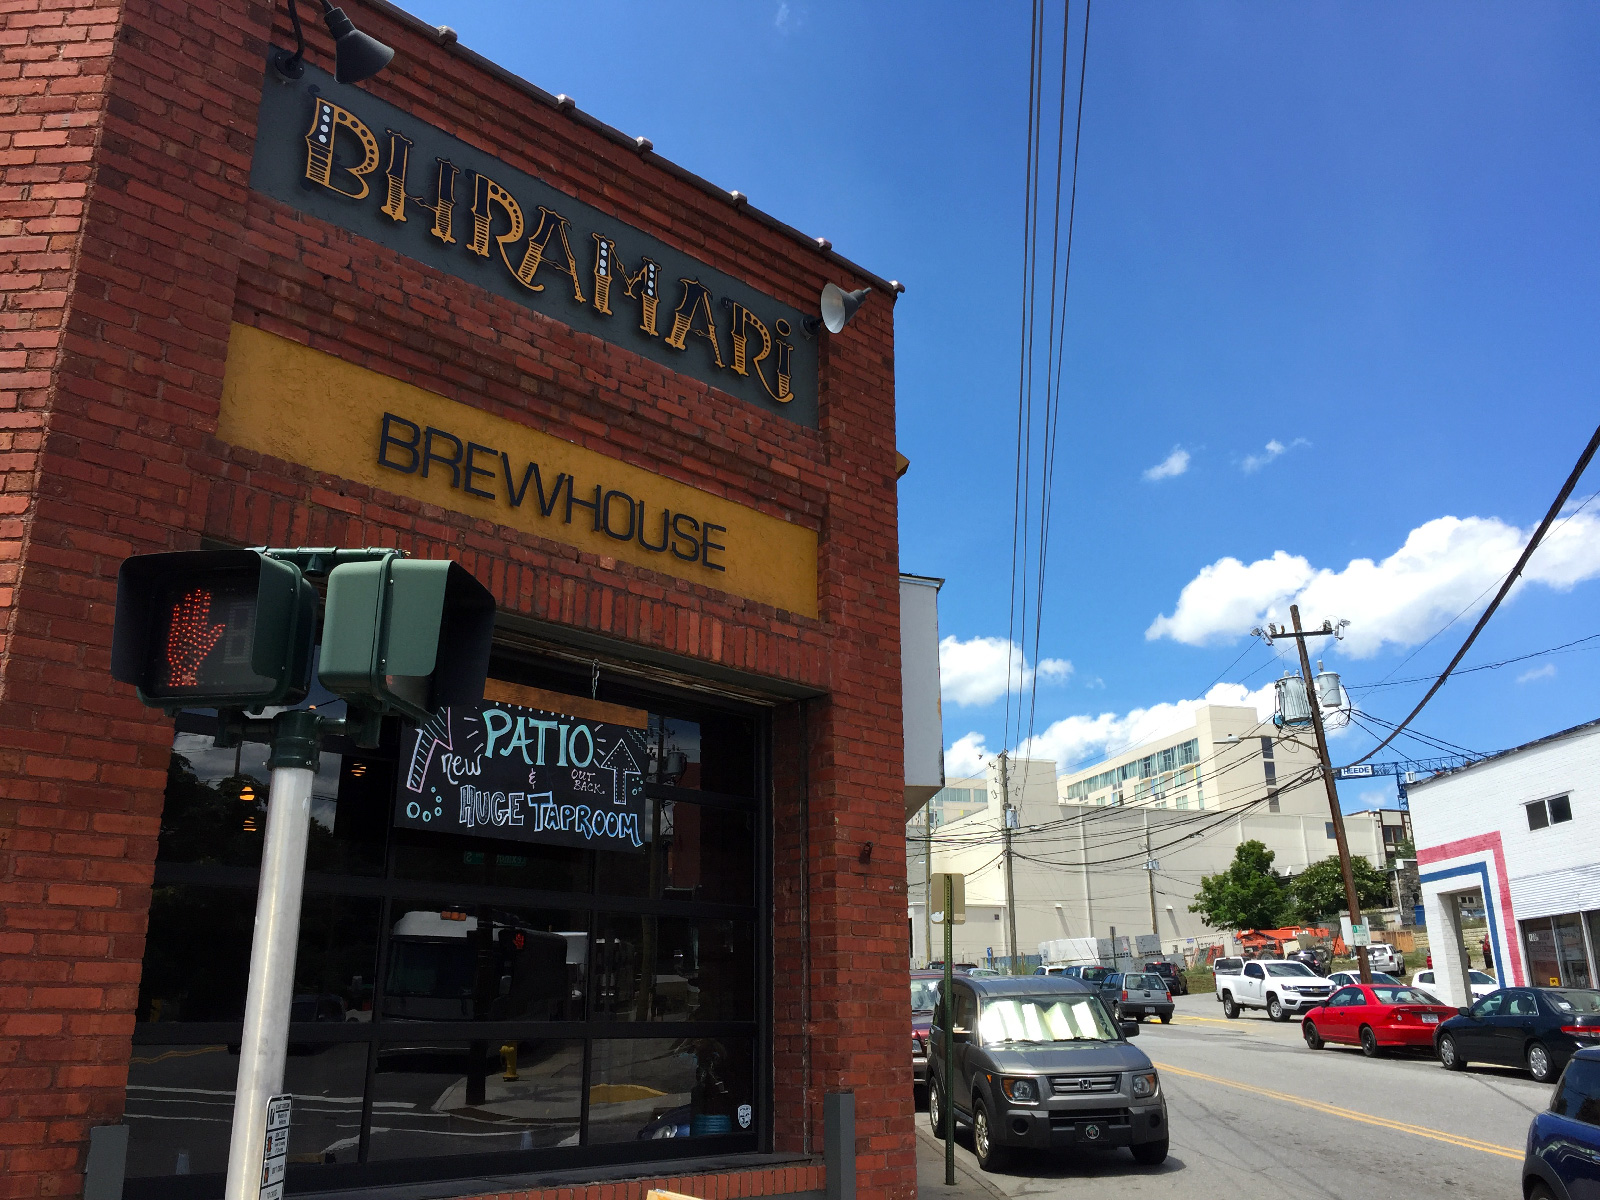 Bhramari Brewhouse in Asheville, NC by Jets Like Taxis